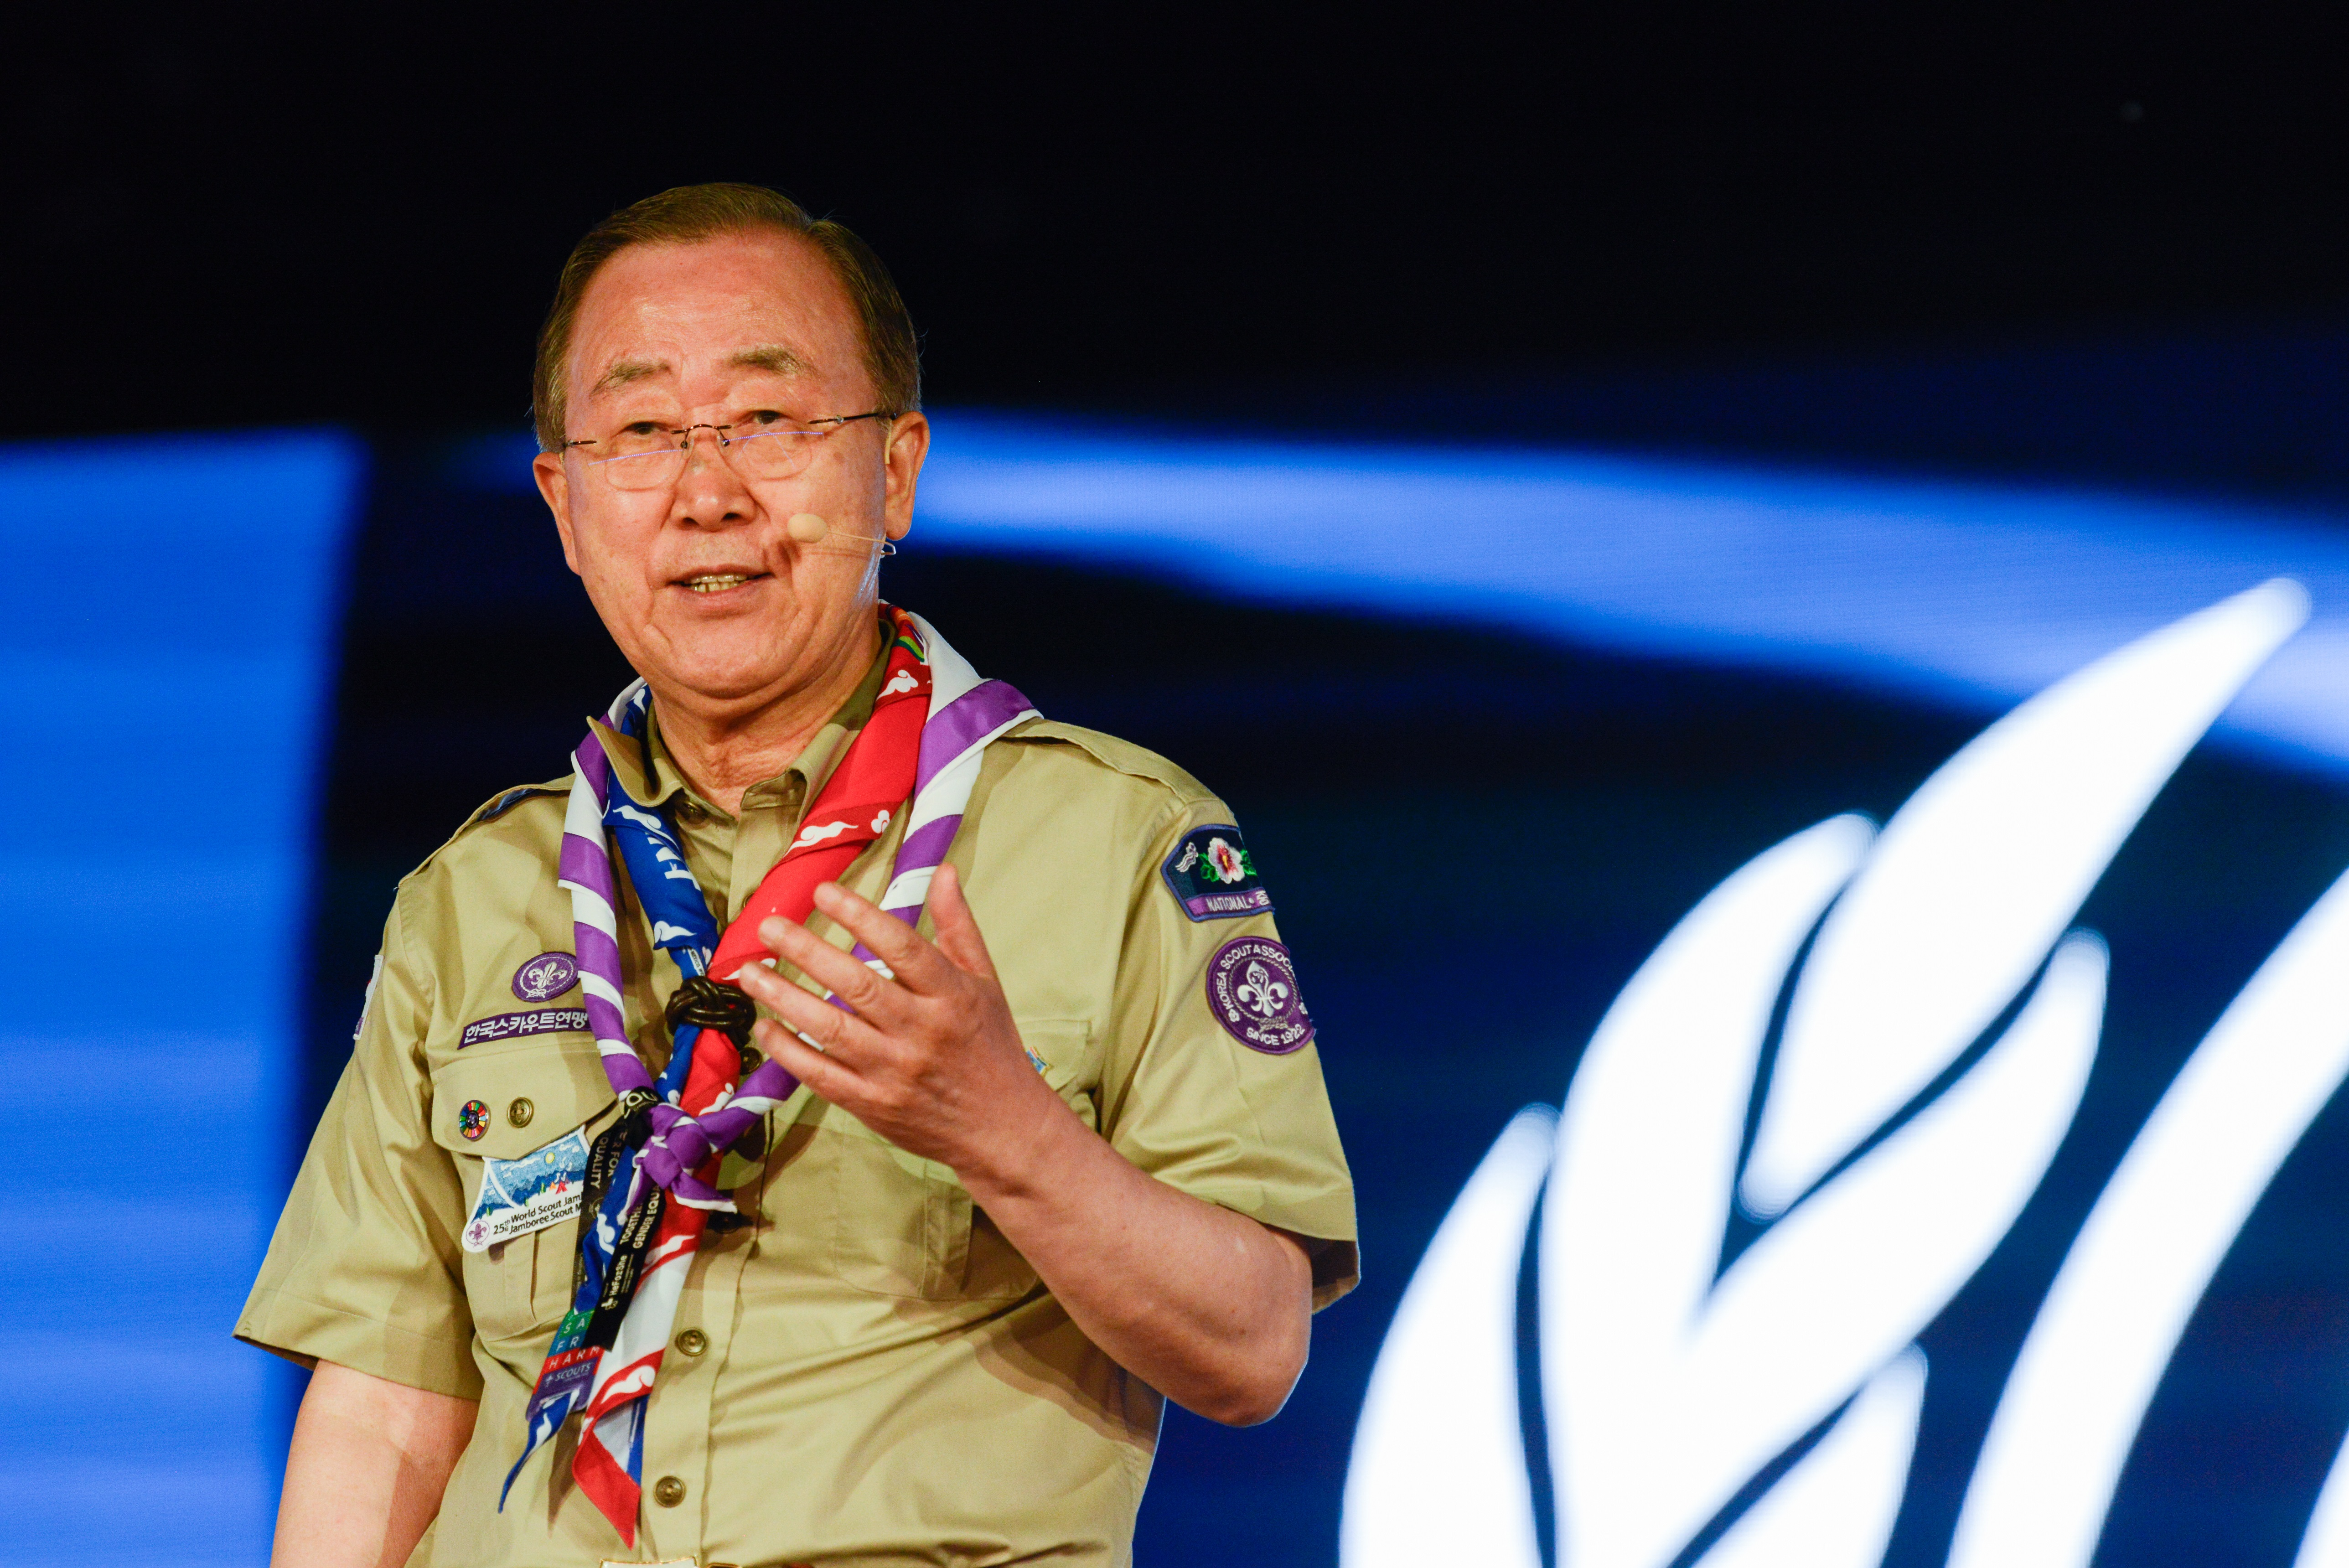 Ahmad Alhendawi opening address of ban ki-moon at the 24th world scout